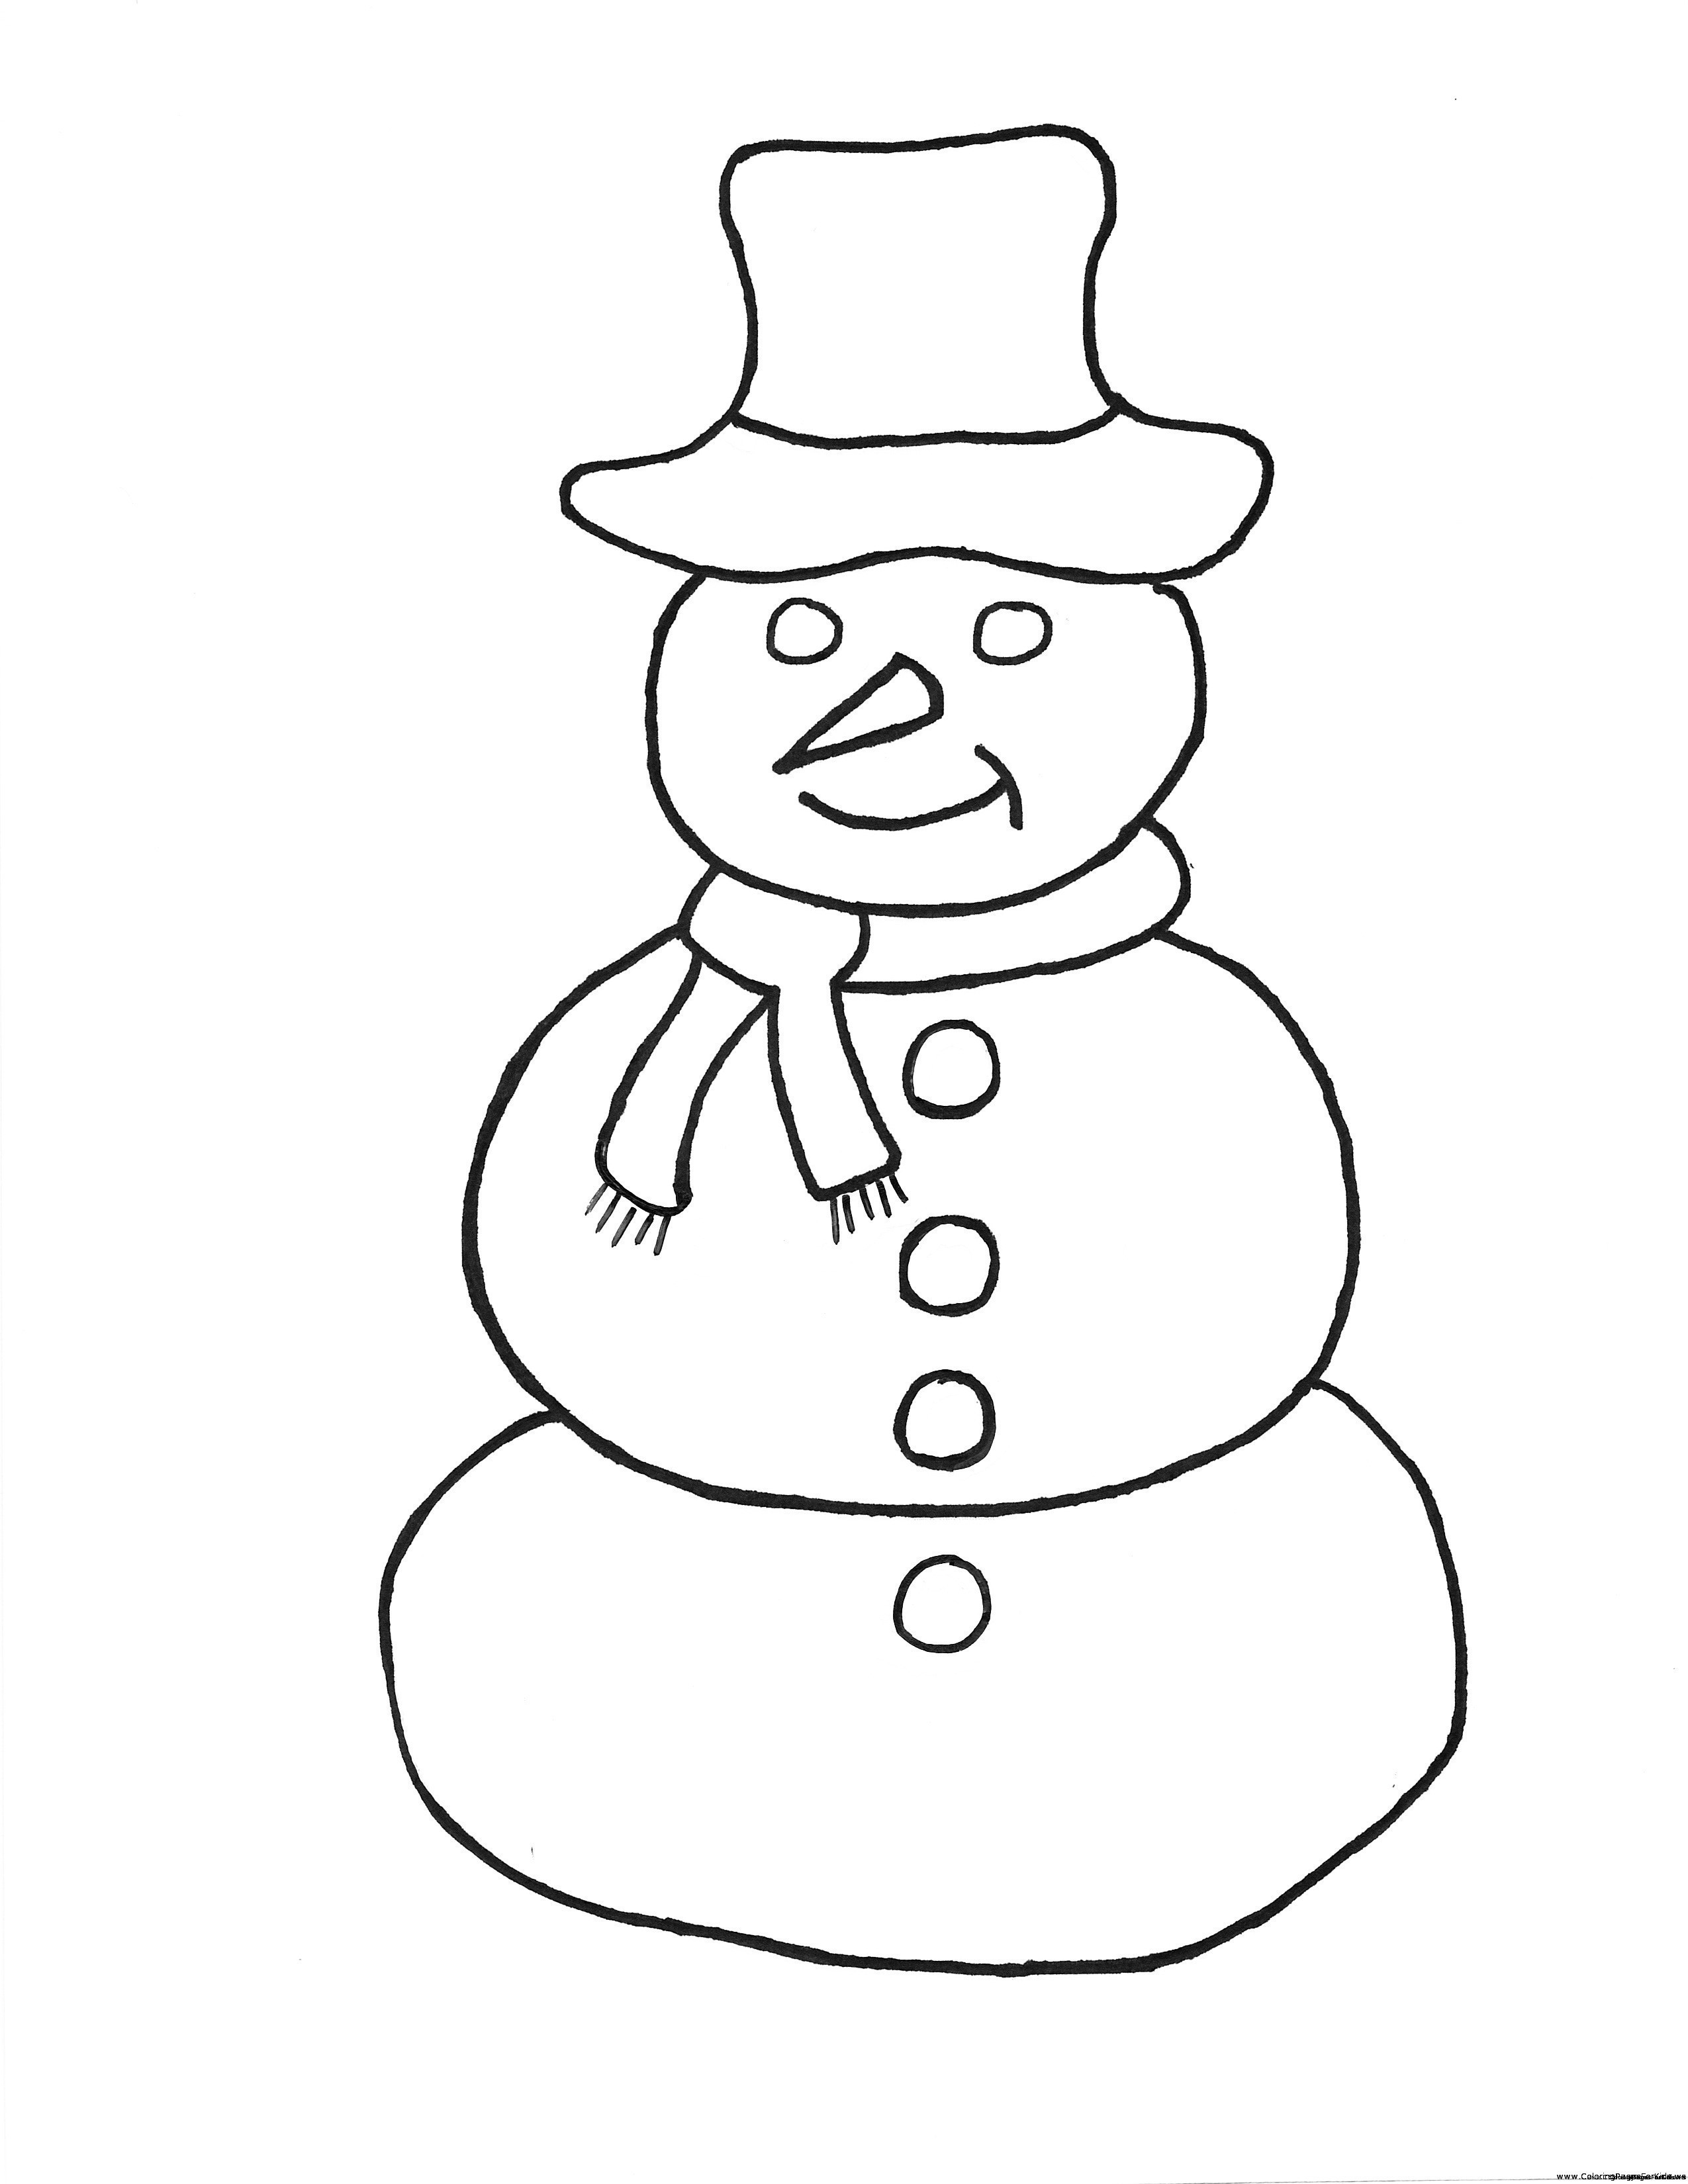 2550x3300 Simple Snowman Coloring Pages Frosty The Snowman Coloring Page